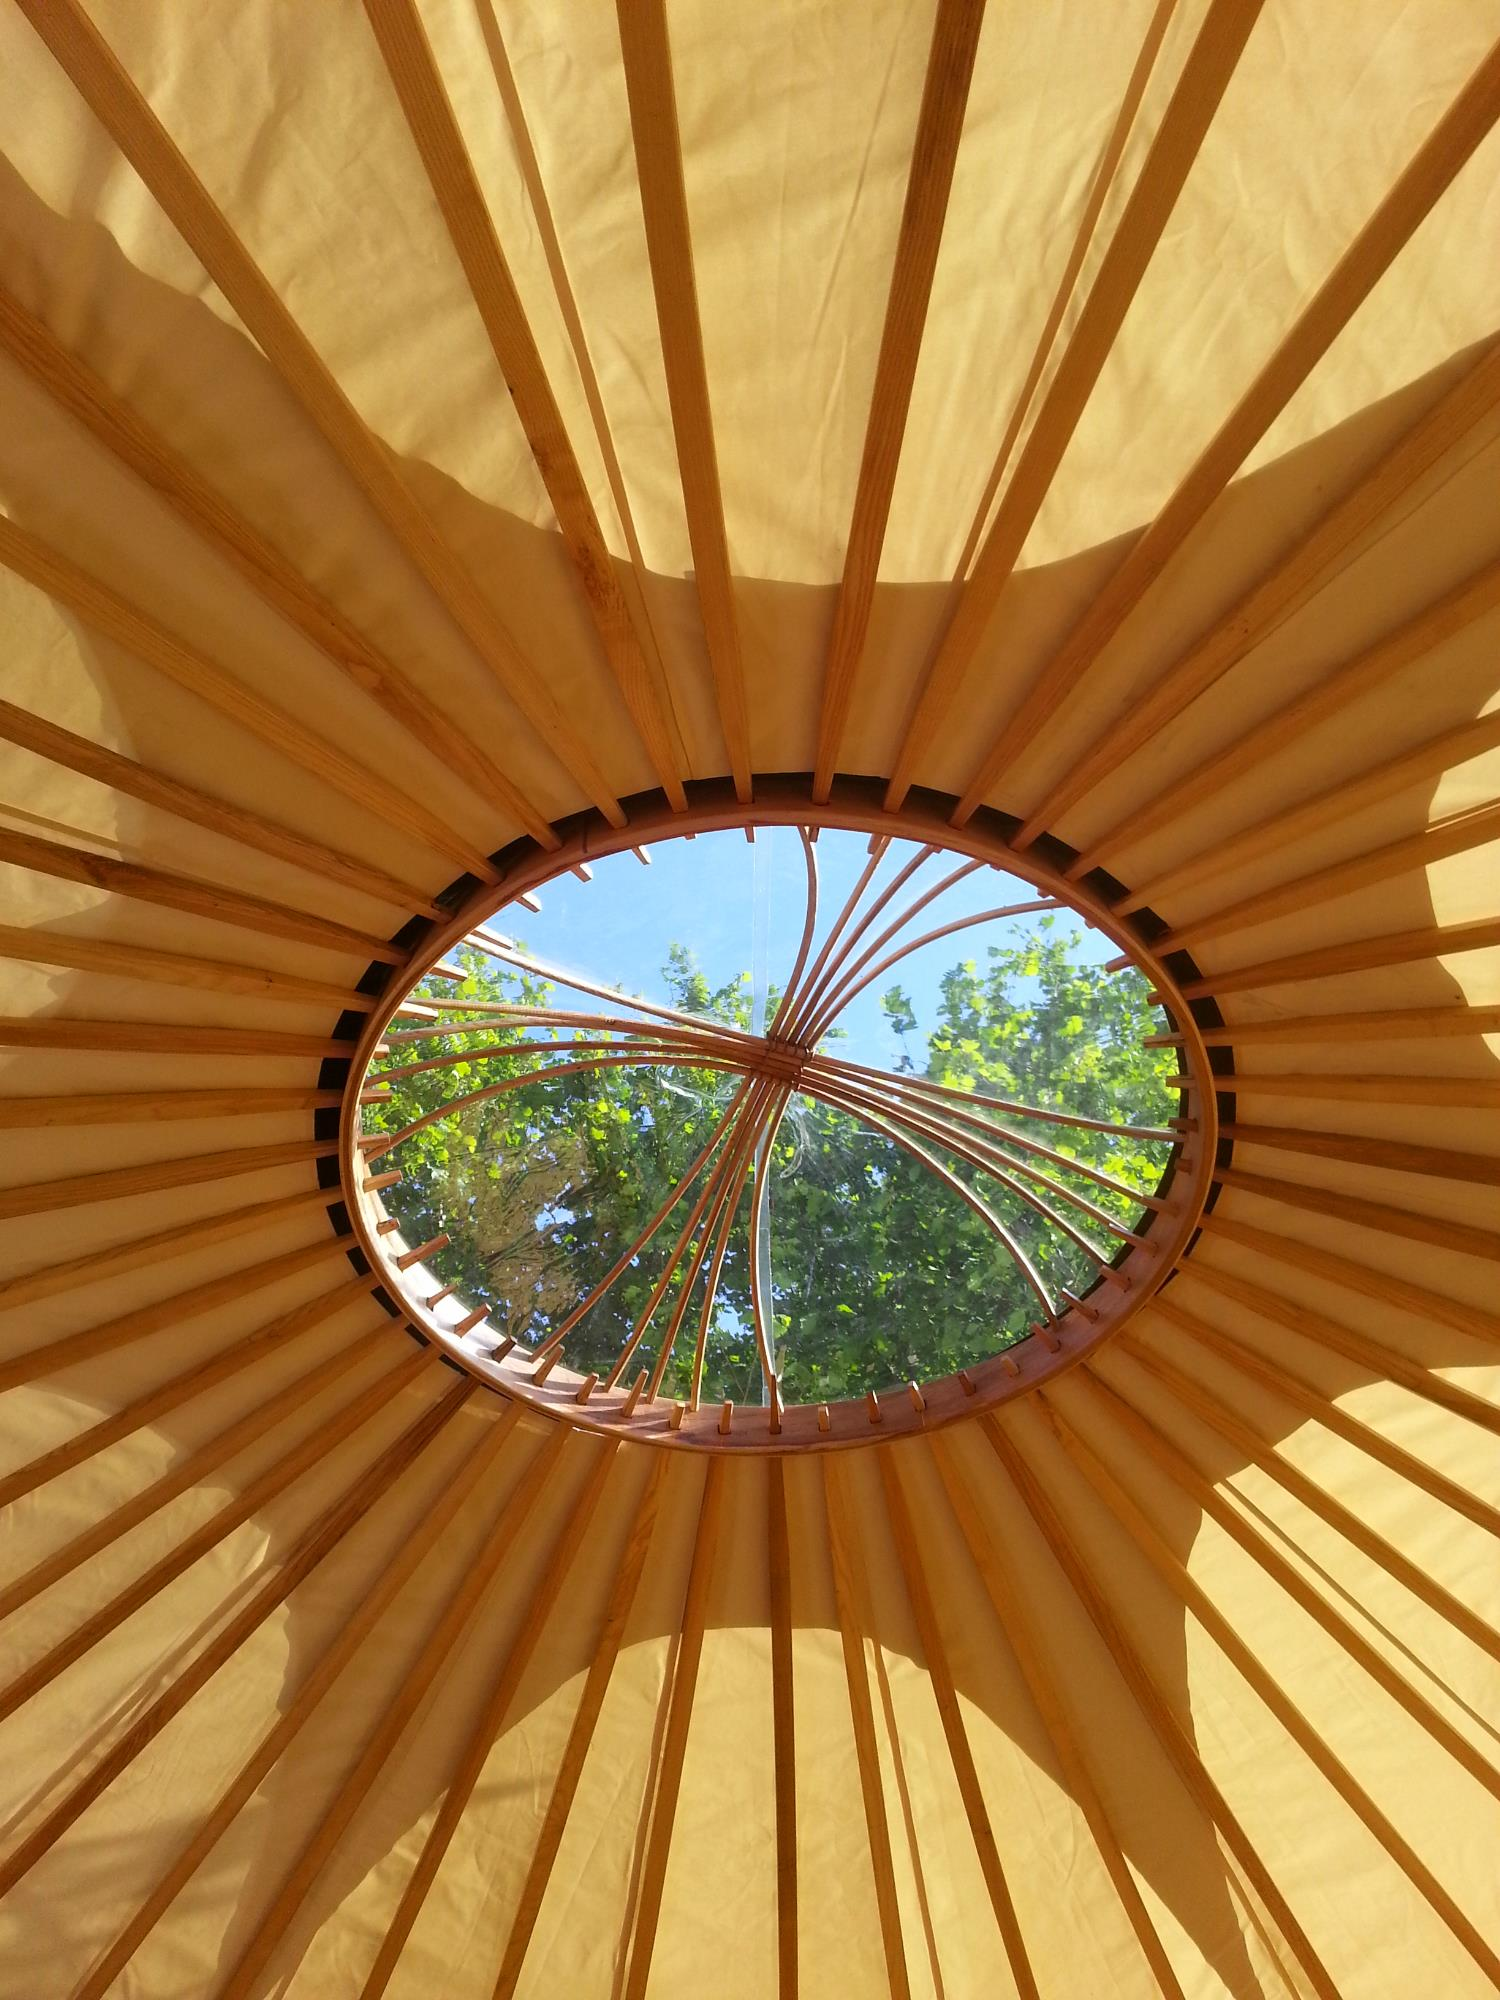 A view of the sunny day through the clear skylight in the yurt roof